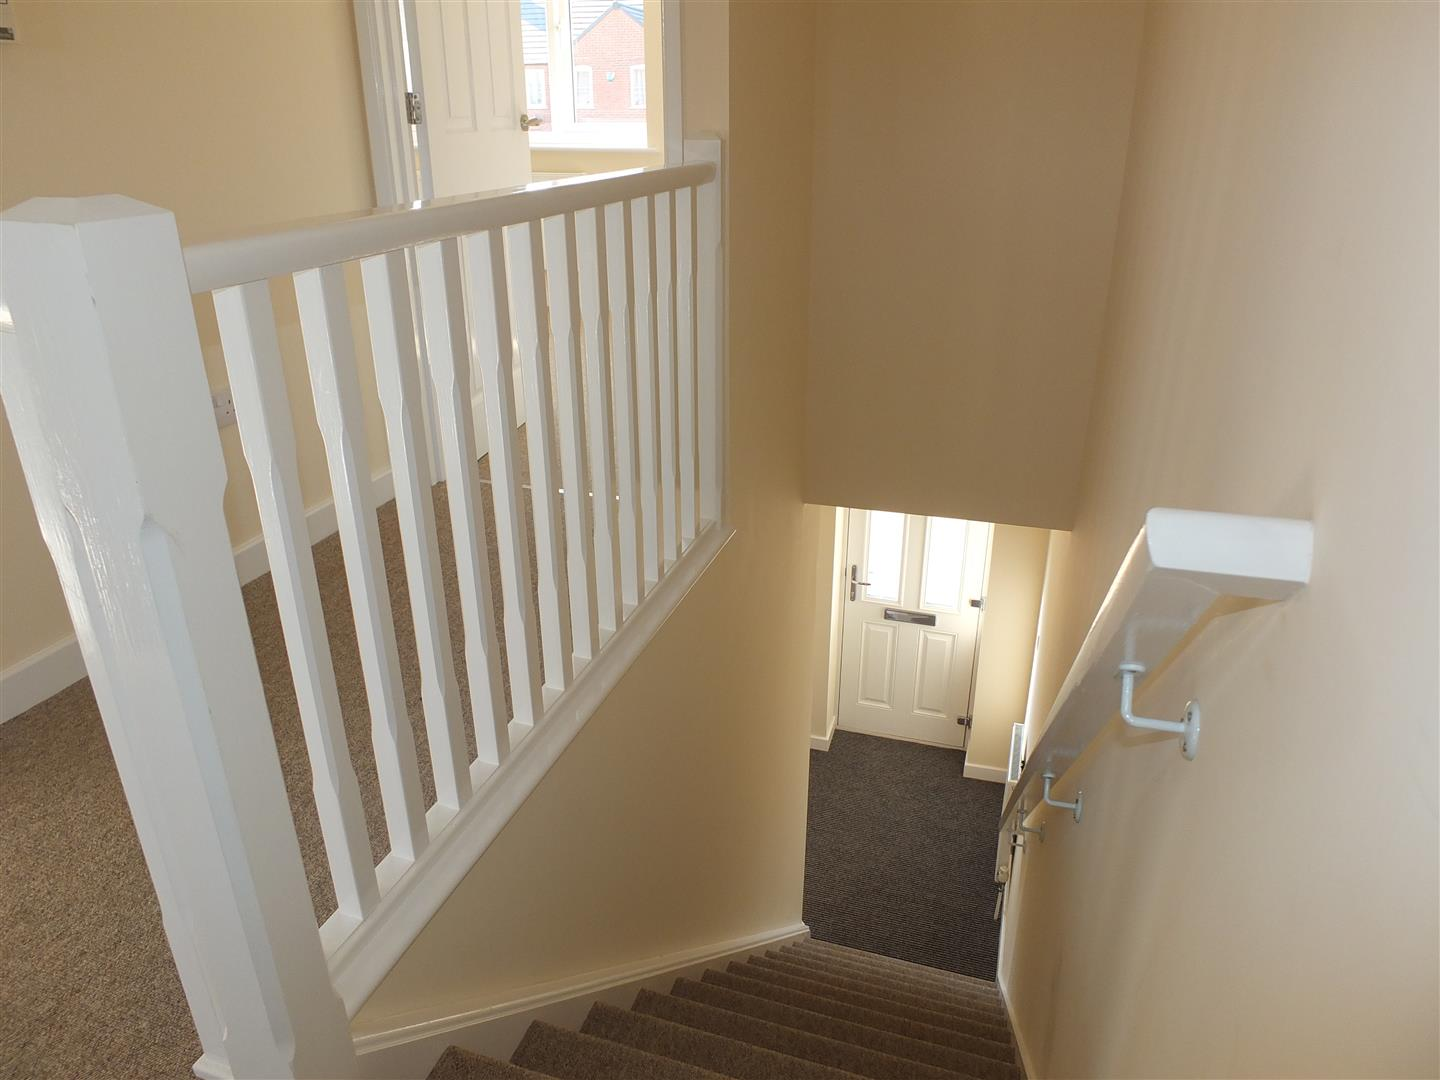 2 bed house to rent in Long Sutton, PE12 9LE  - Property Image 10